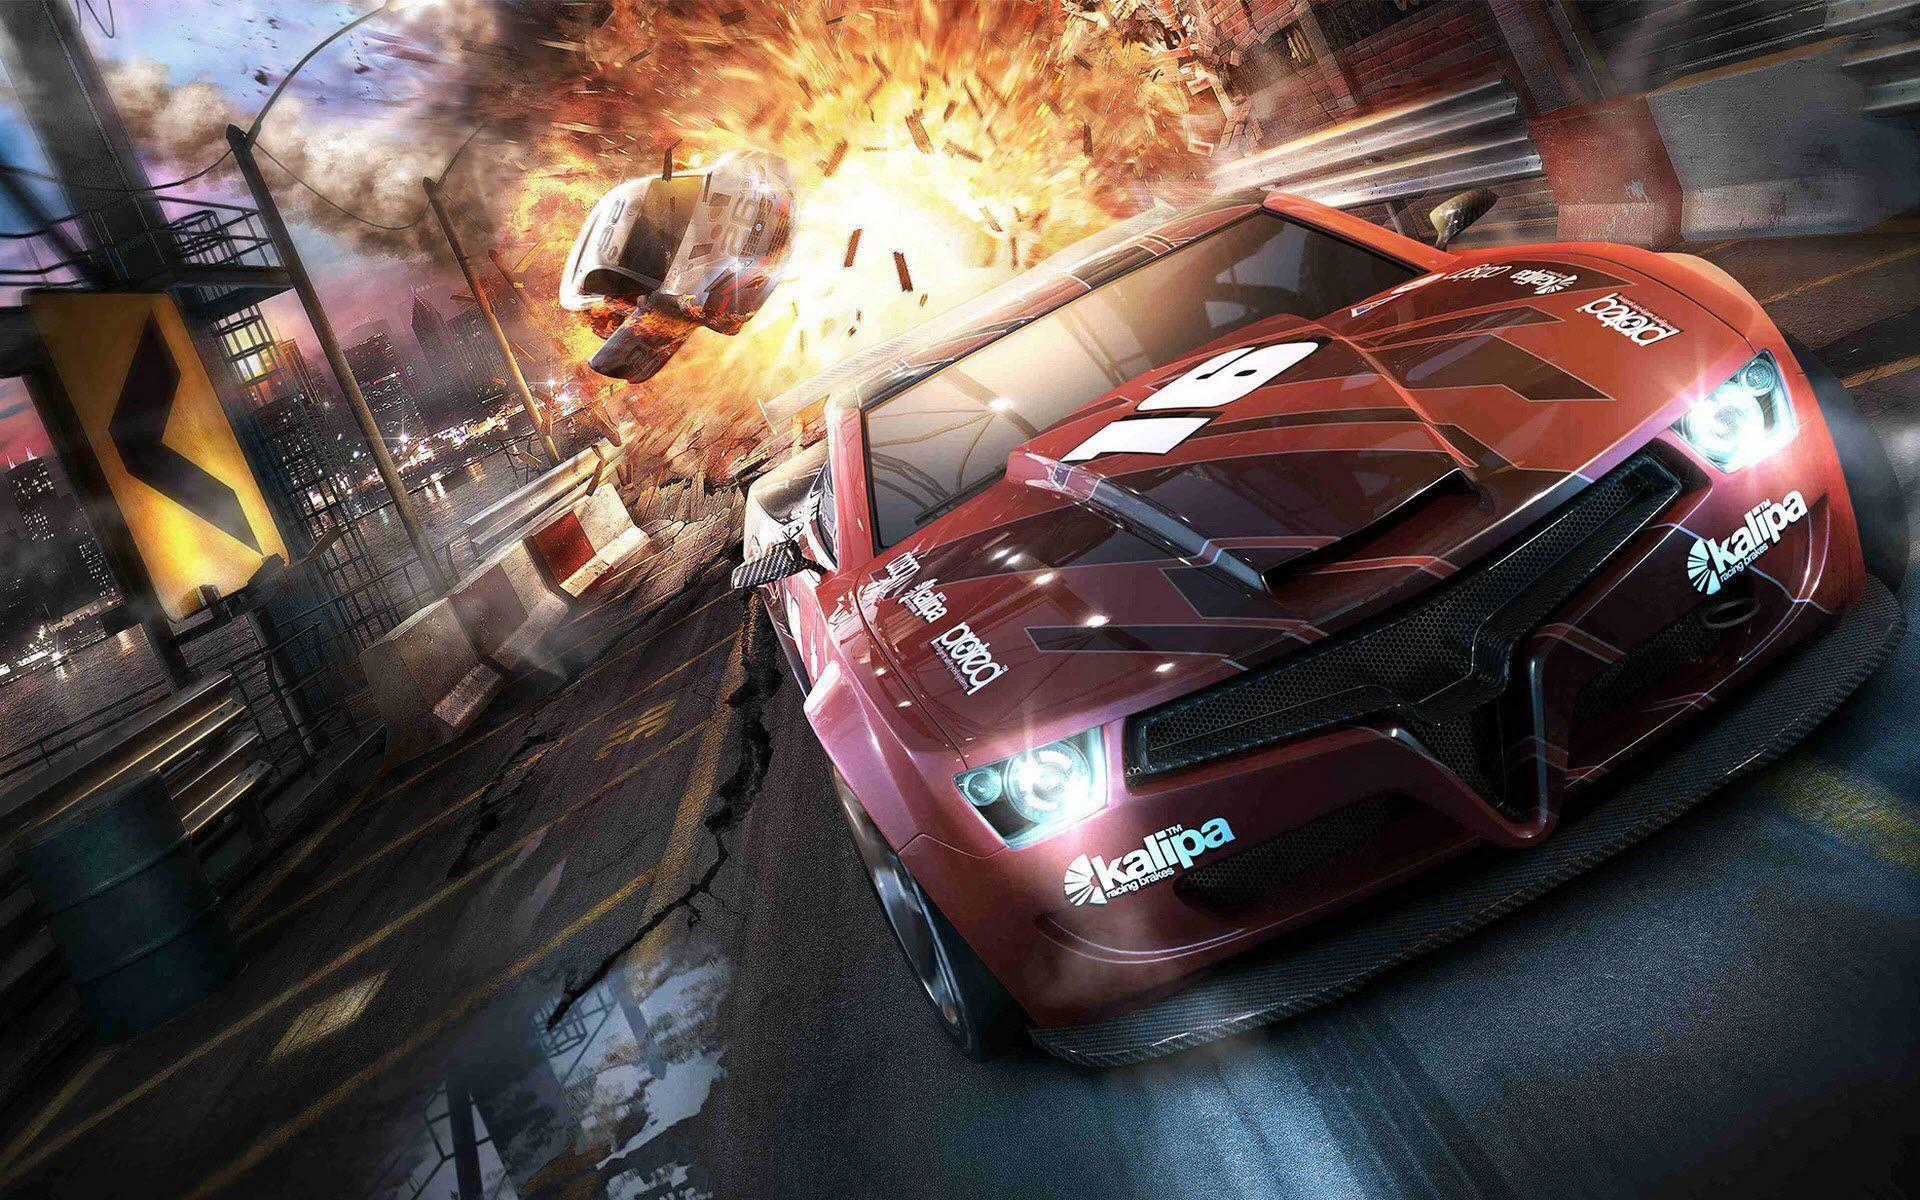 Hd Pc Gaming Wallpapers: Gaming PC Wallpapers